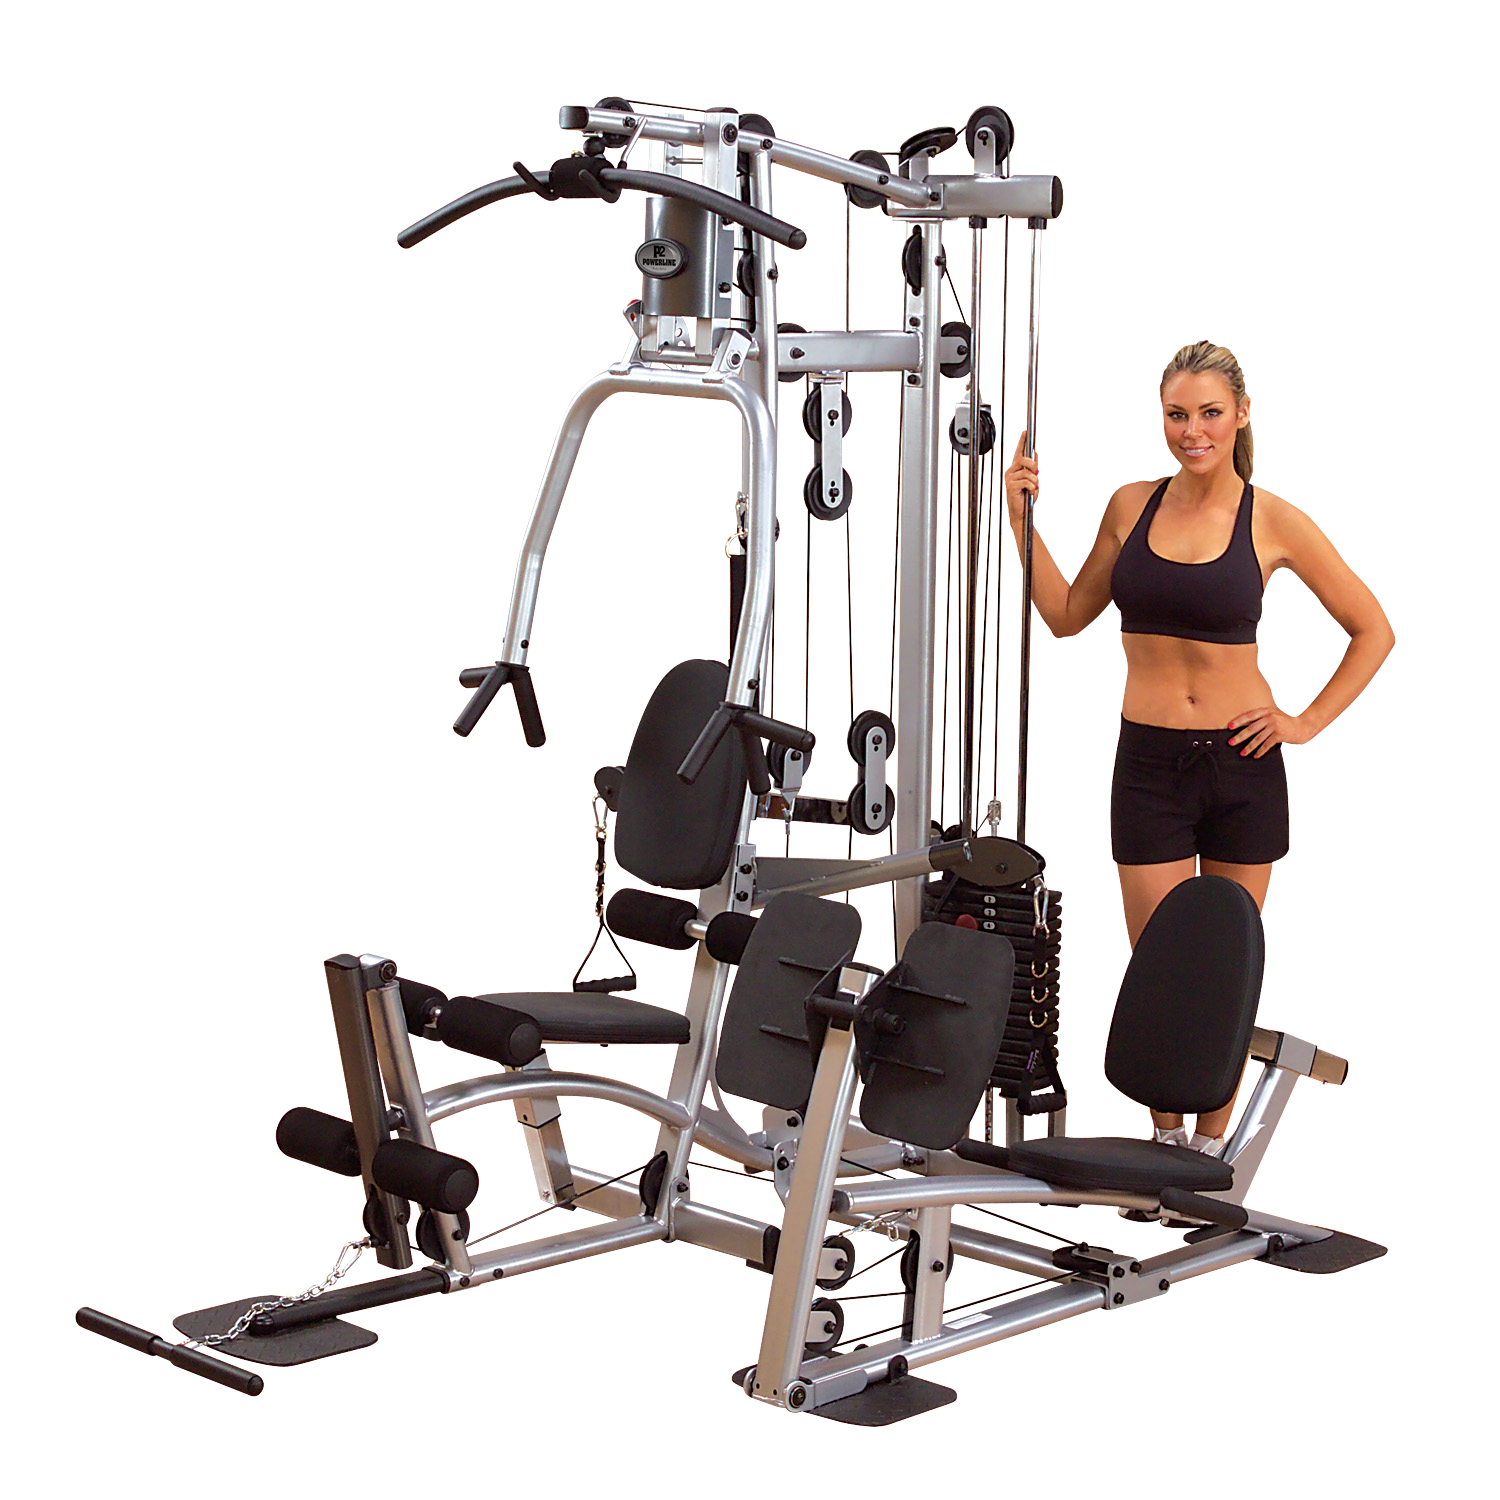 P2LPX Functional Gym With Leg Press Package